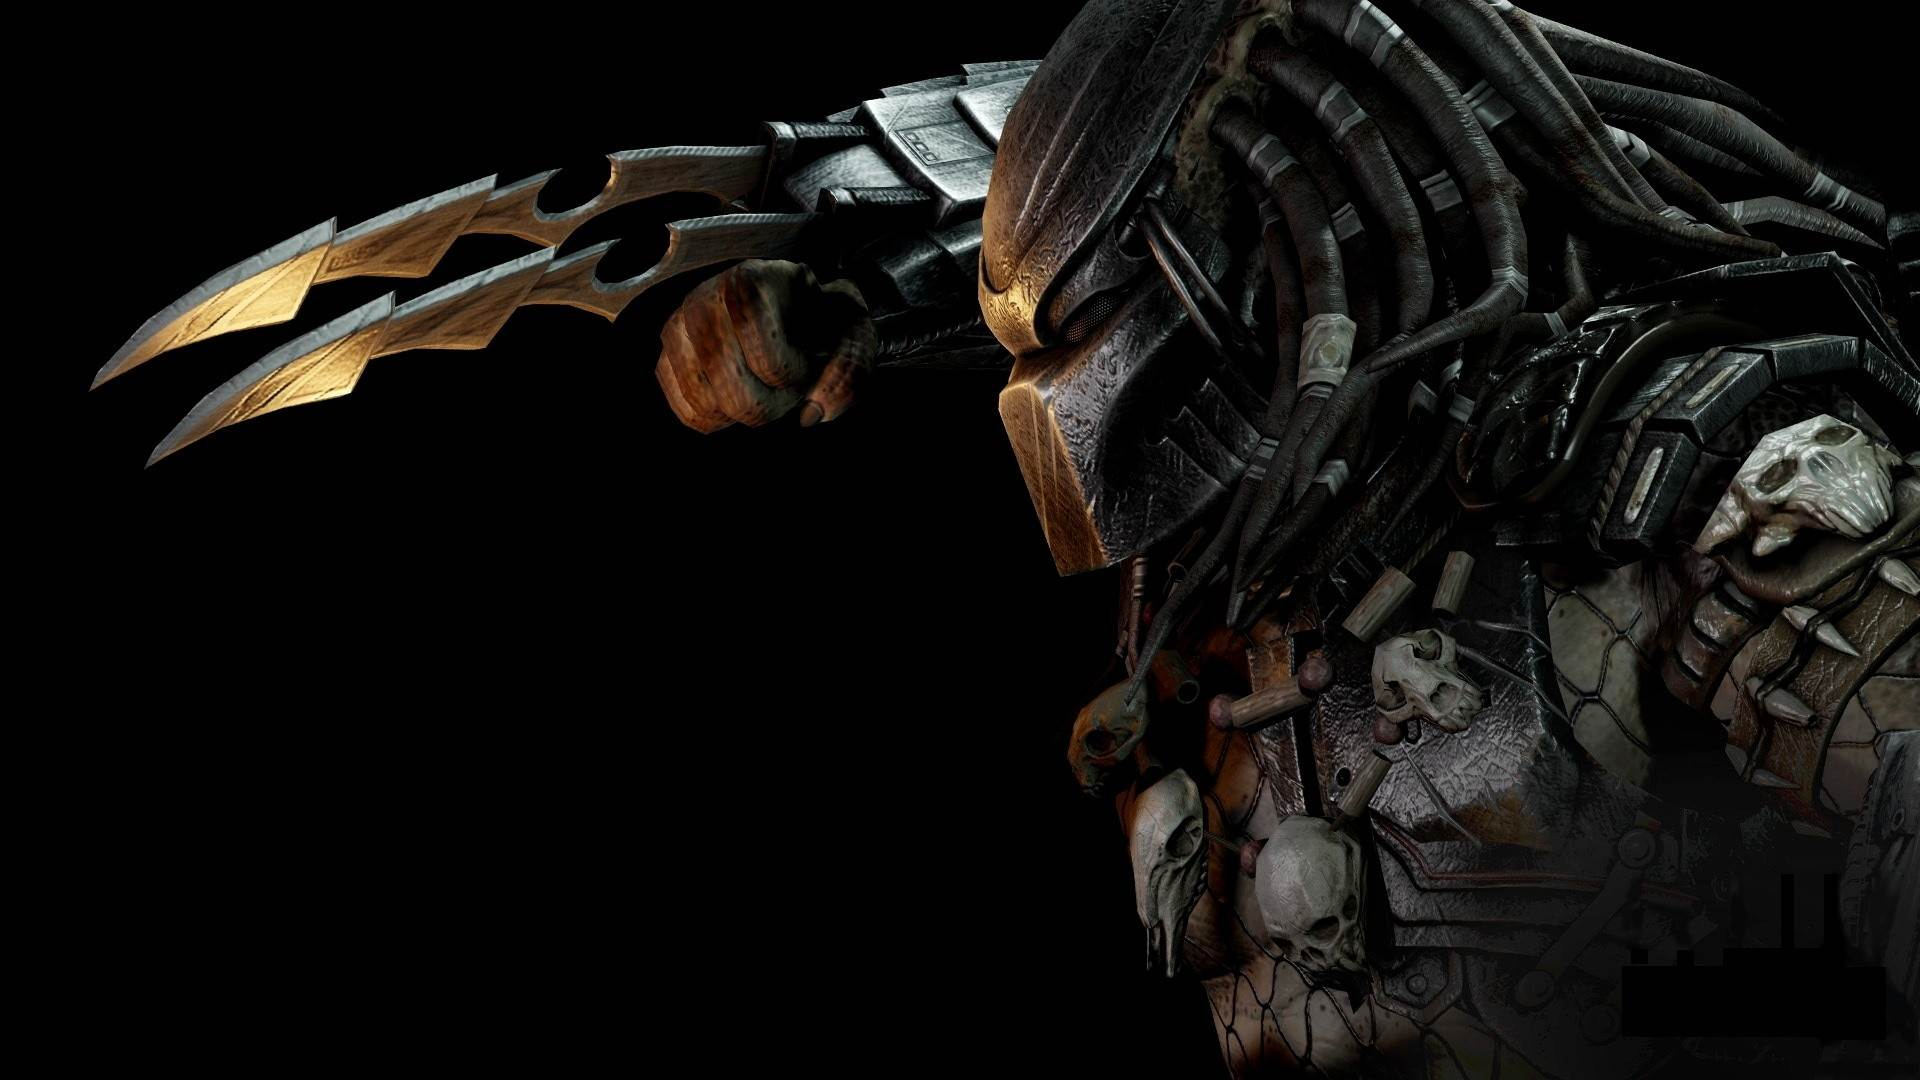 Wallpaper of alien vs predator in high definition avp on earth 2 1 | Chainimage